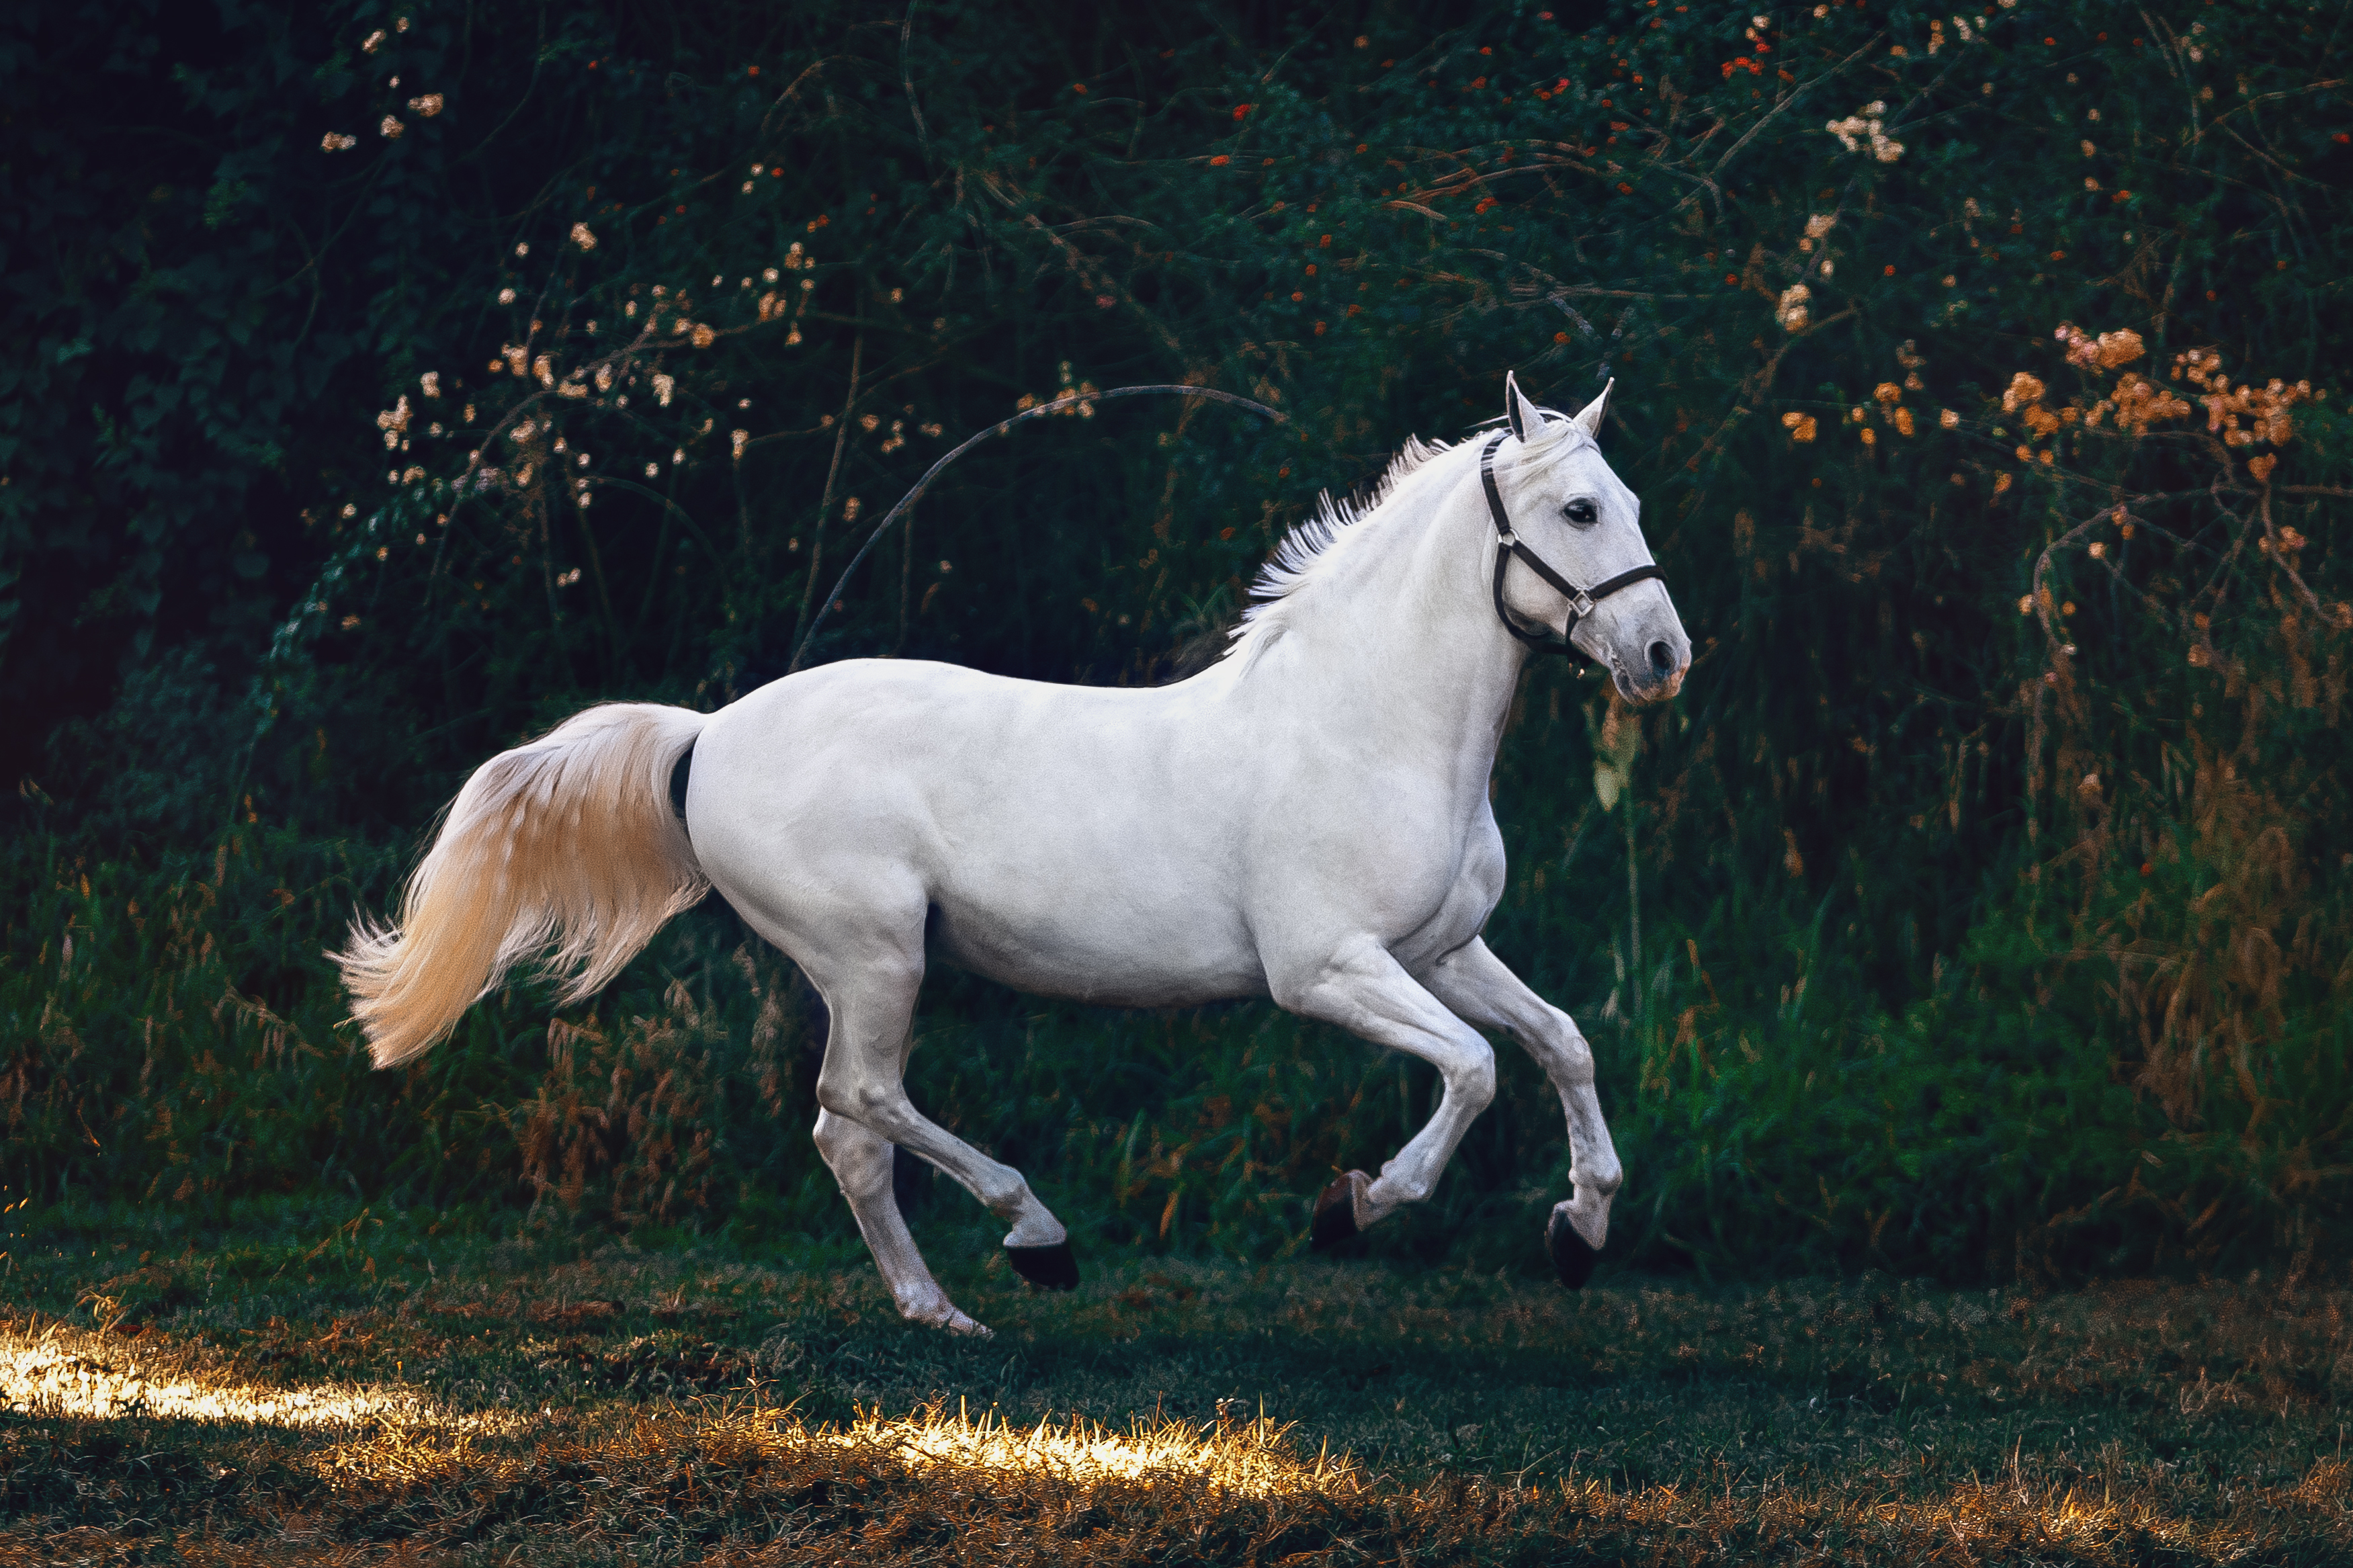 Leaping White Horse Illustration Horse 853532 Hd Wallpaper Backgrounds Download